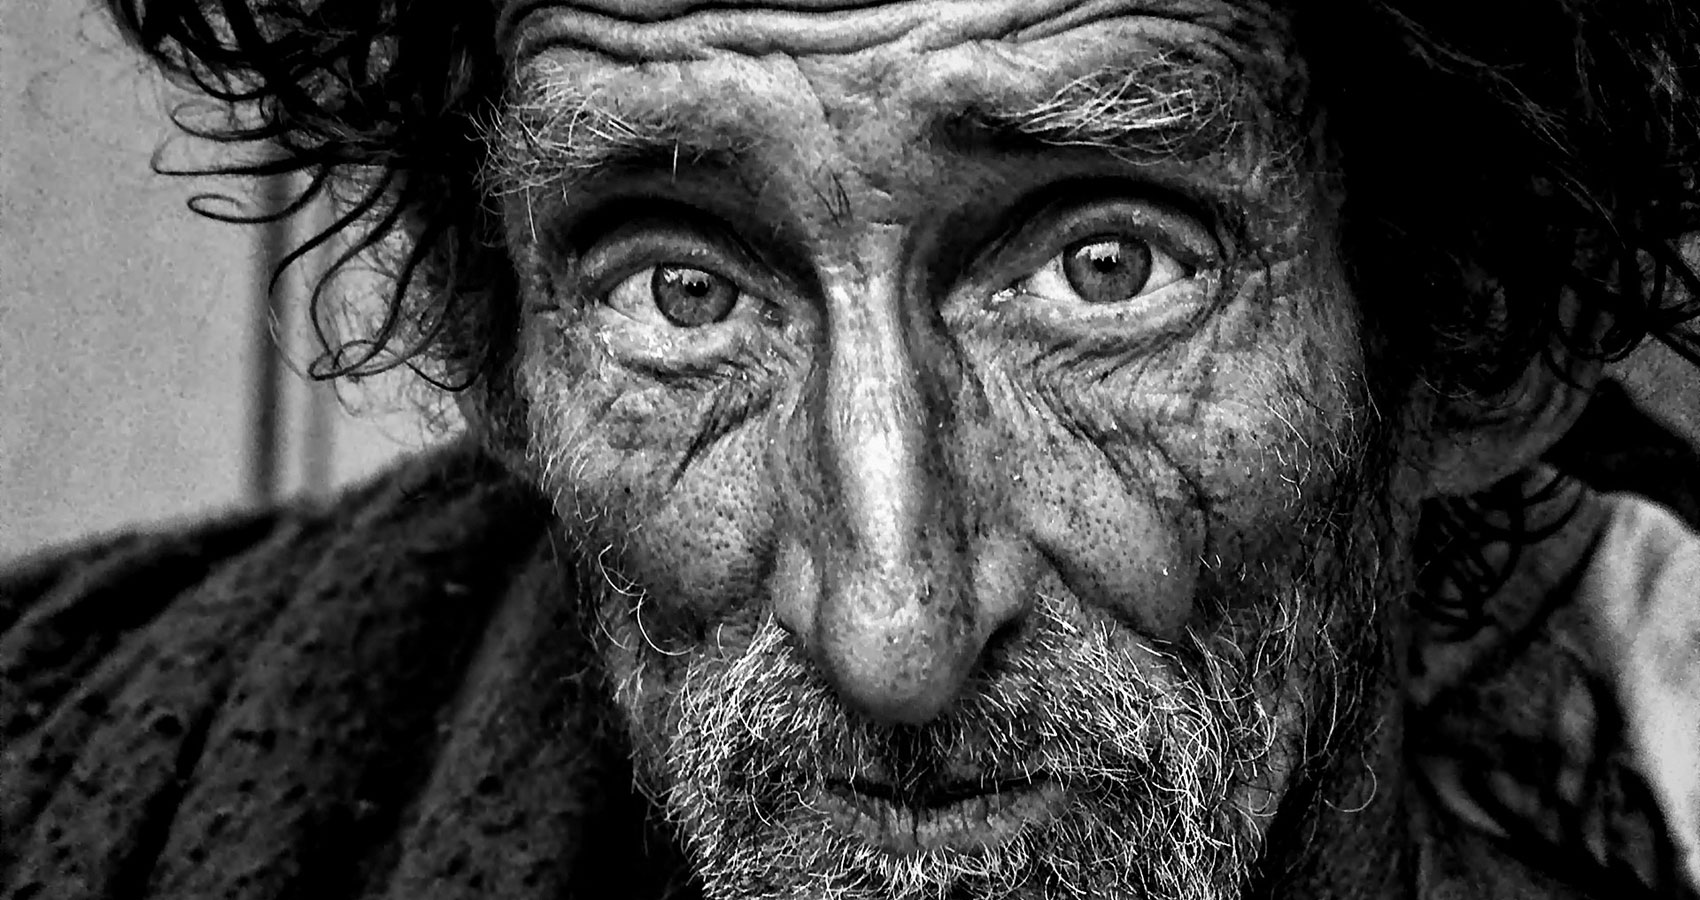 Vagrancy, a poem written by Steve Pearson at Spillwords.com